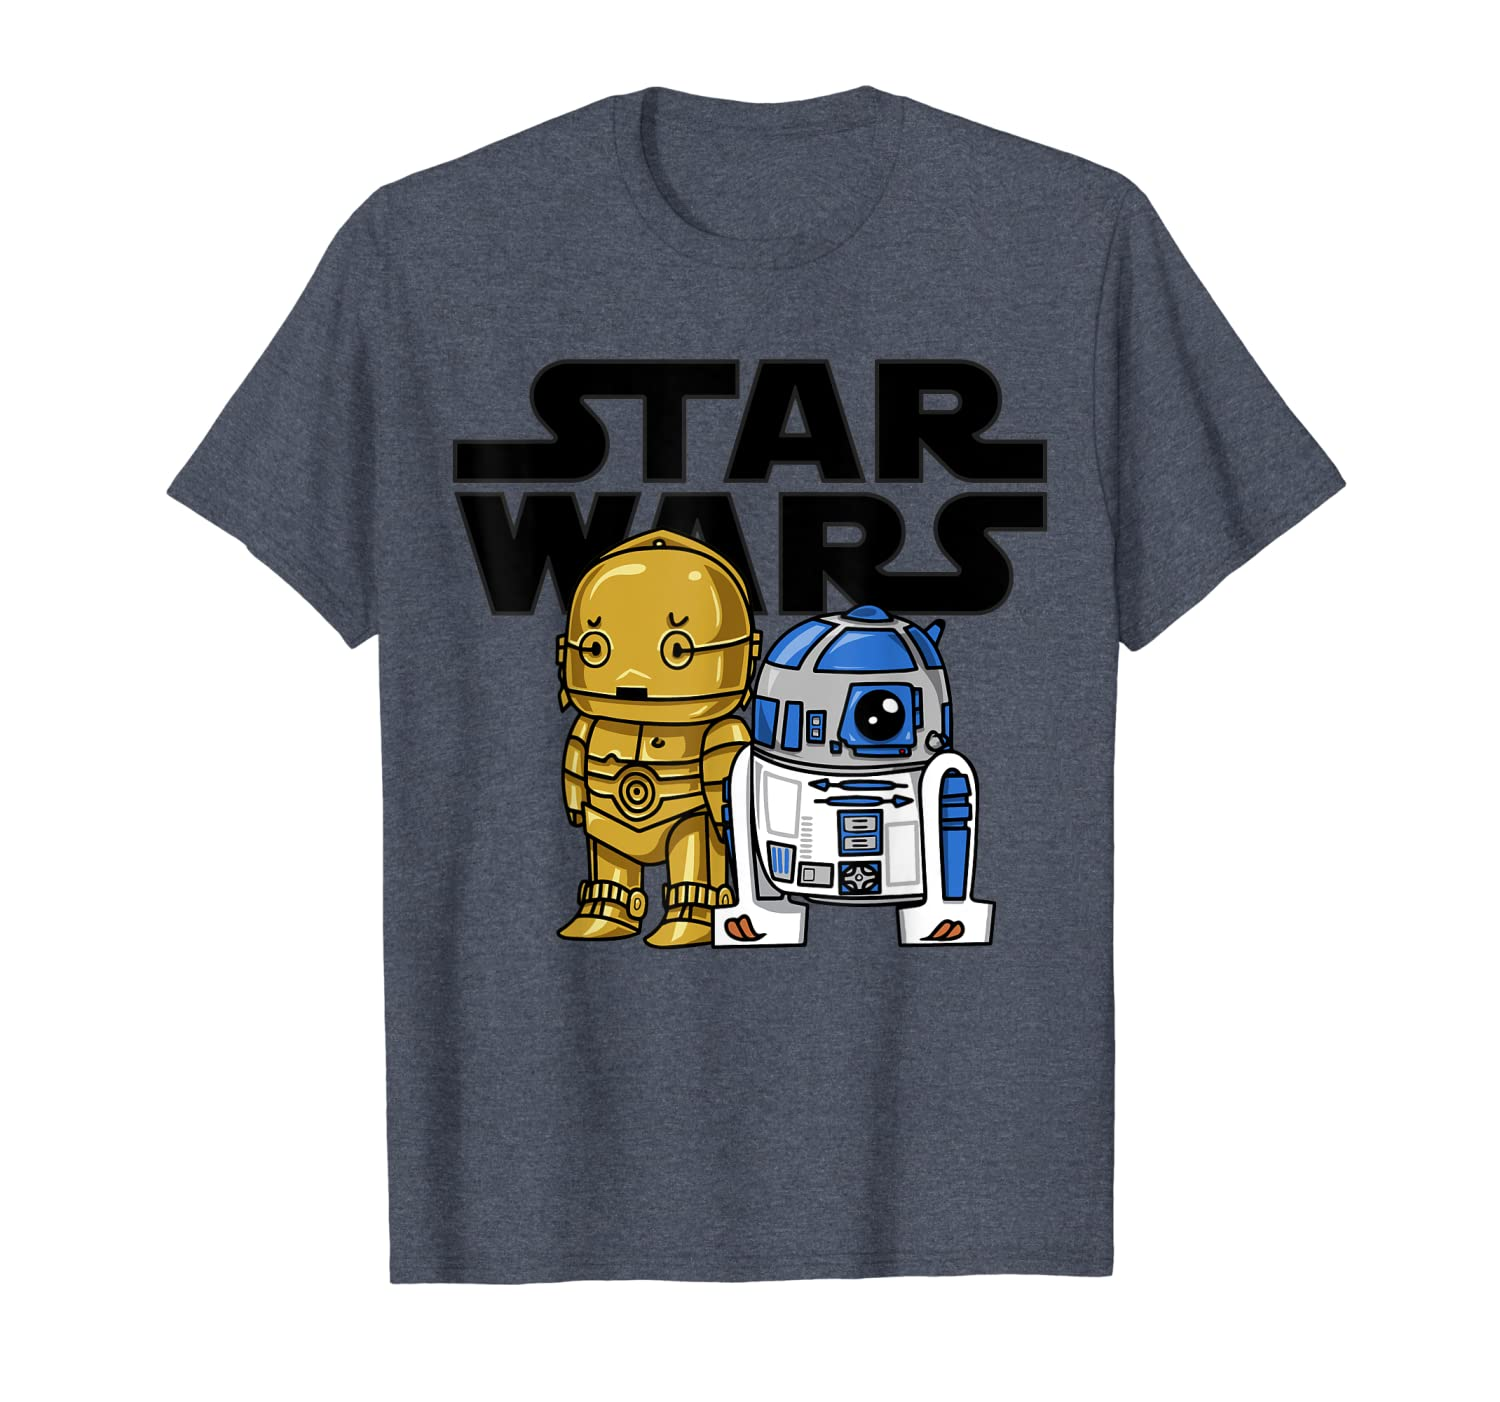 Star Wars Boba R2-D2 and C-3PO Cute Cartoon Graphic T-Shirt